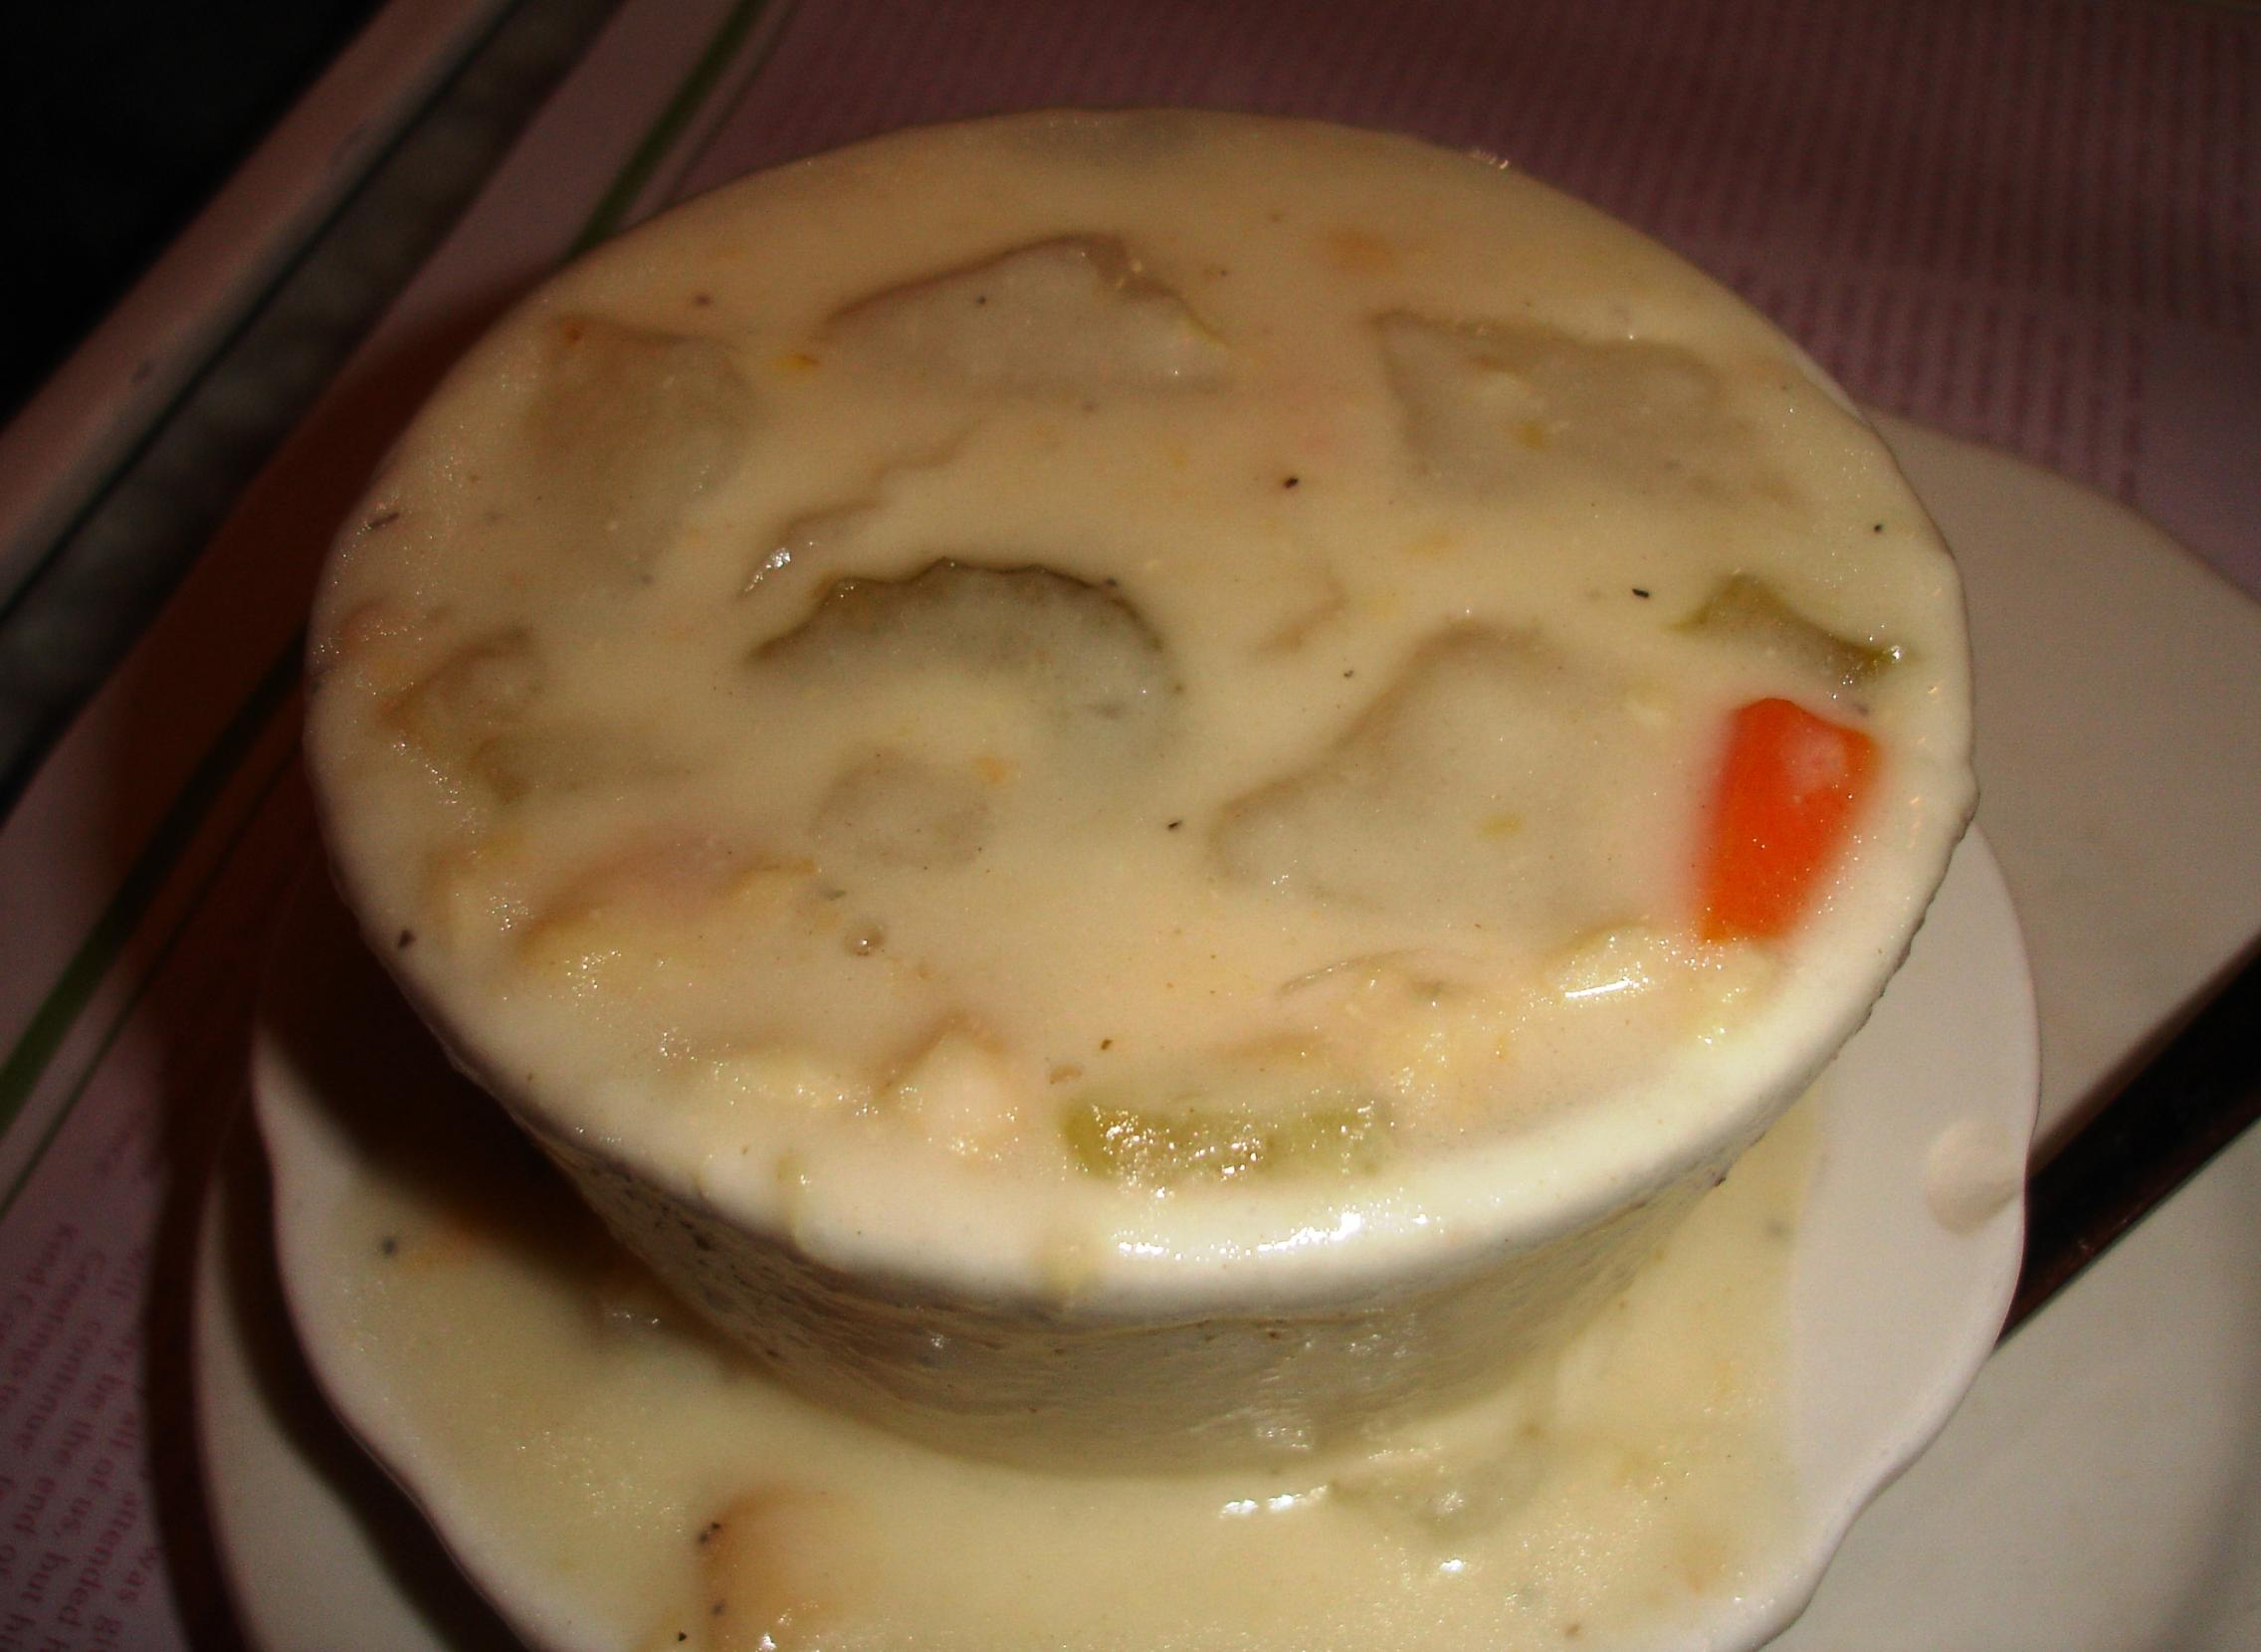 A cup of soup comes with dinner, if you'd like. The seafood chowder is light on seafood but high on flavor.